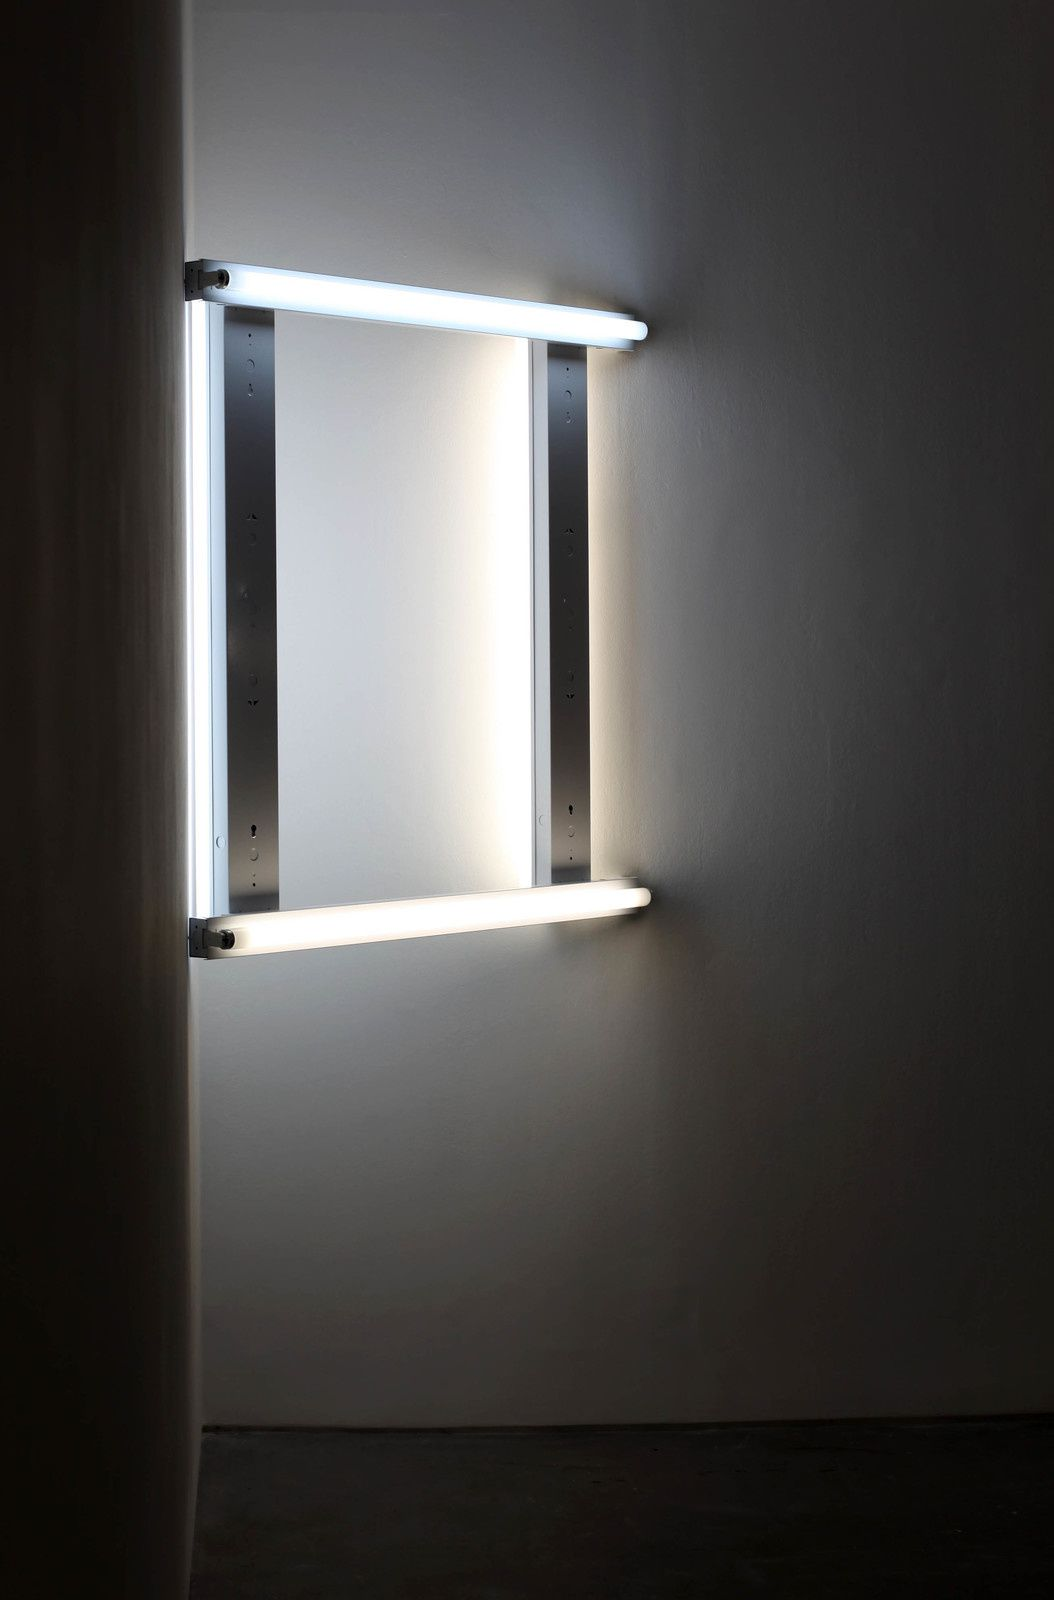 """Untitled"", 1970 de Dan FLAVIN - Courtesy Galerie David Zwirner Paris © Photo Éric Simon"